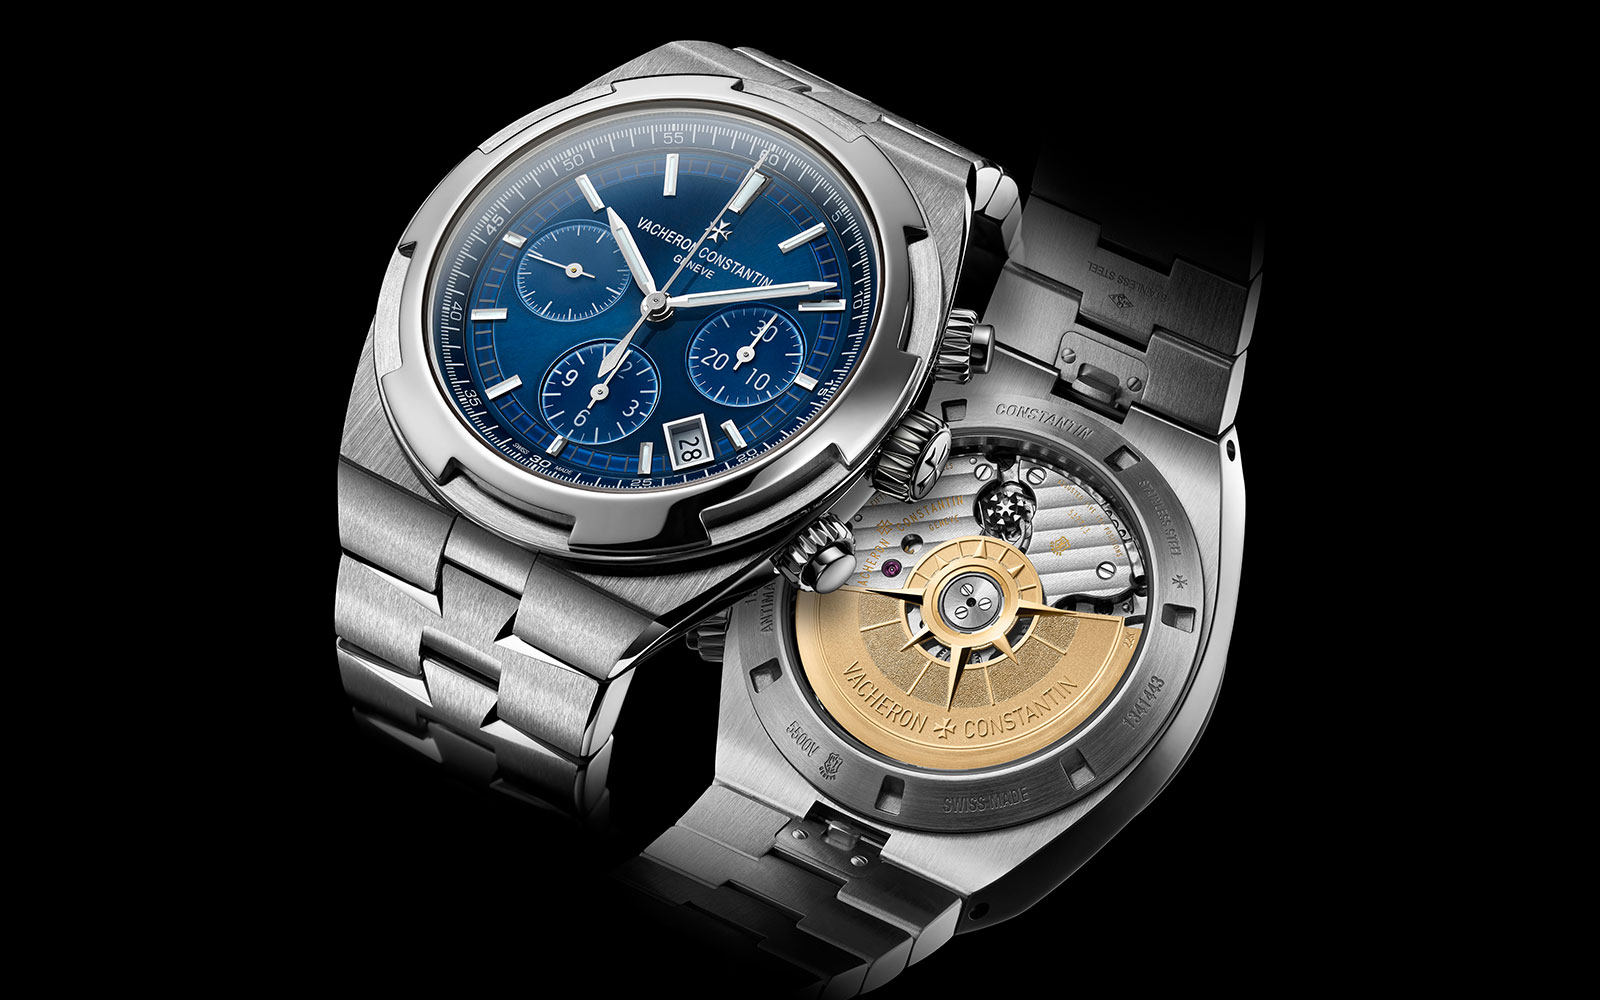 OVERSEAS CHRONOGRAPH 5500V/110A-B148 - feature